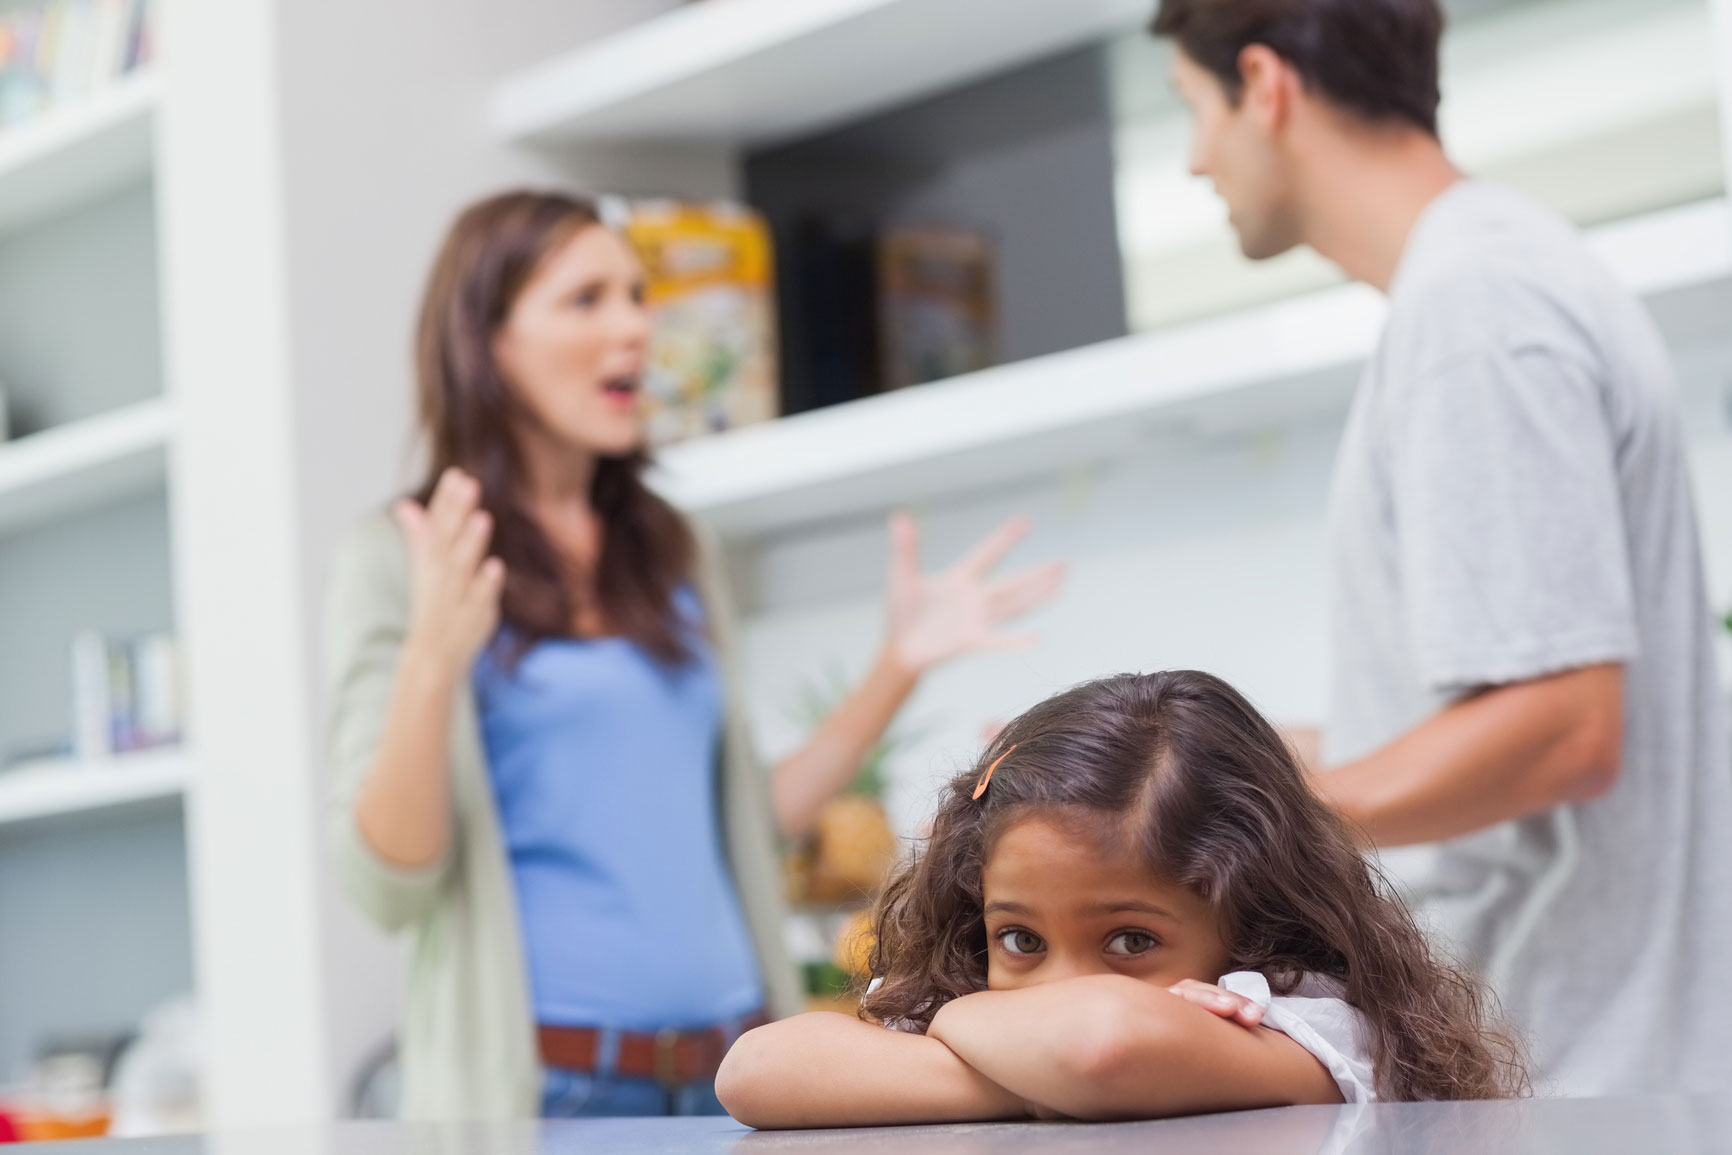 Counselors and conflicted parenting - Counseling Today